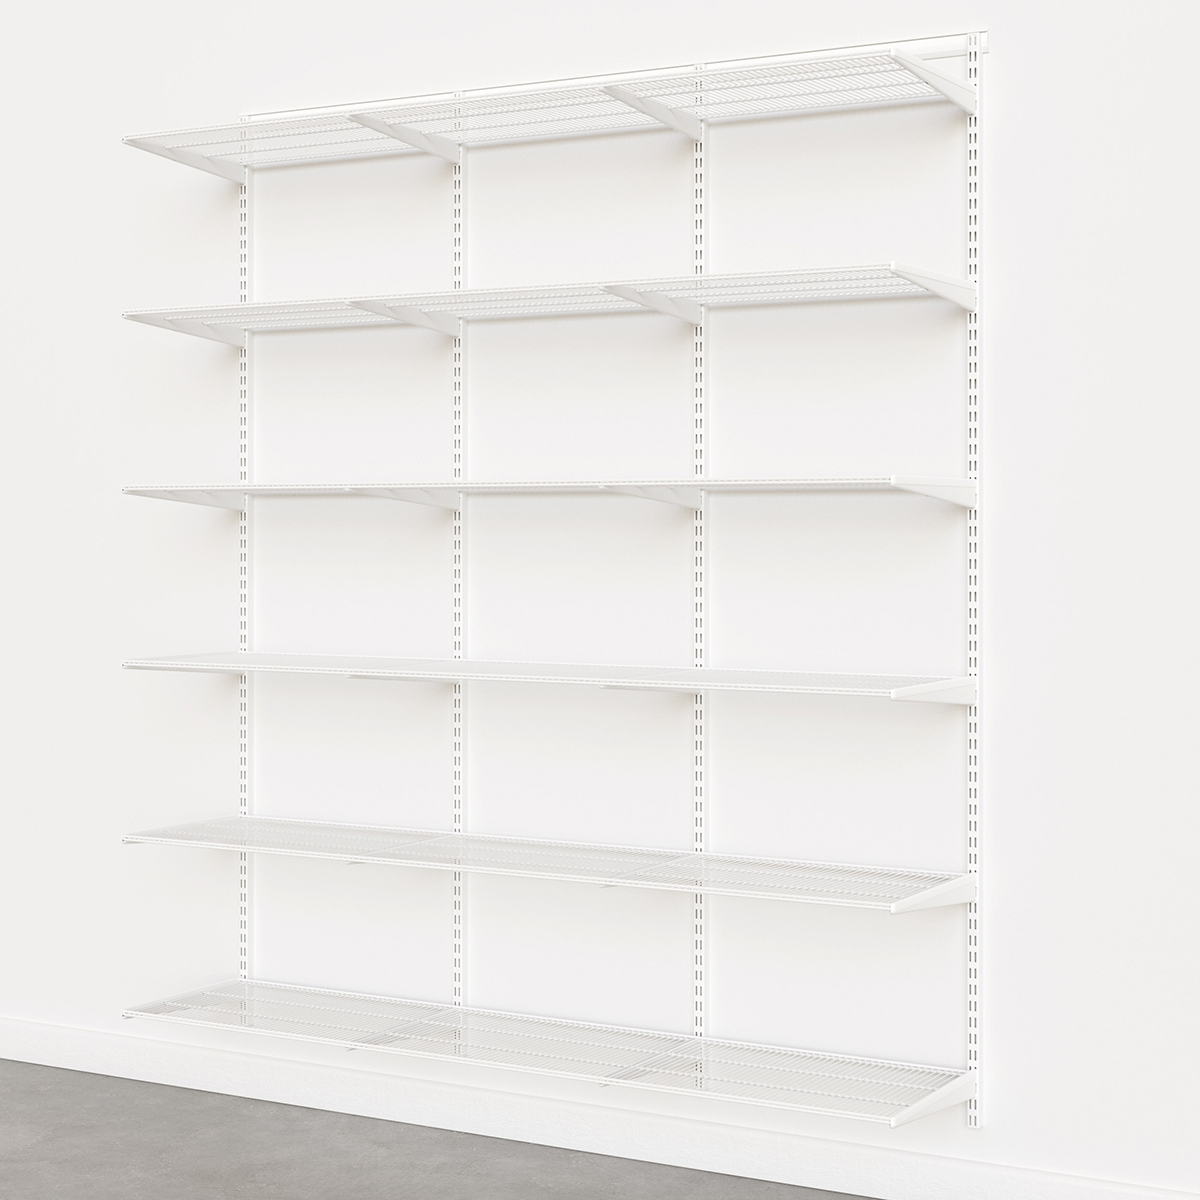 Elfa Classic White 6' Basic Shelving Units for Anywhere